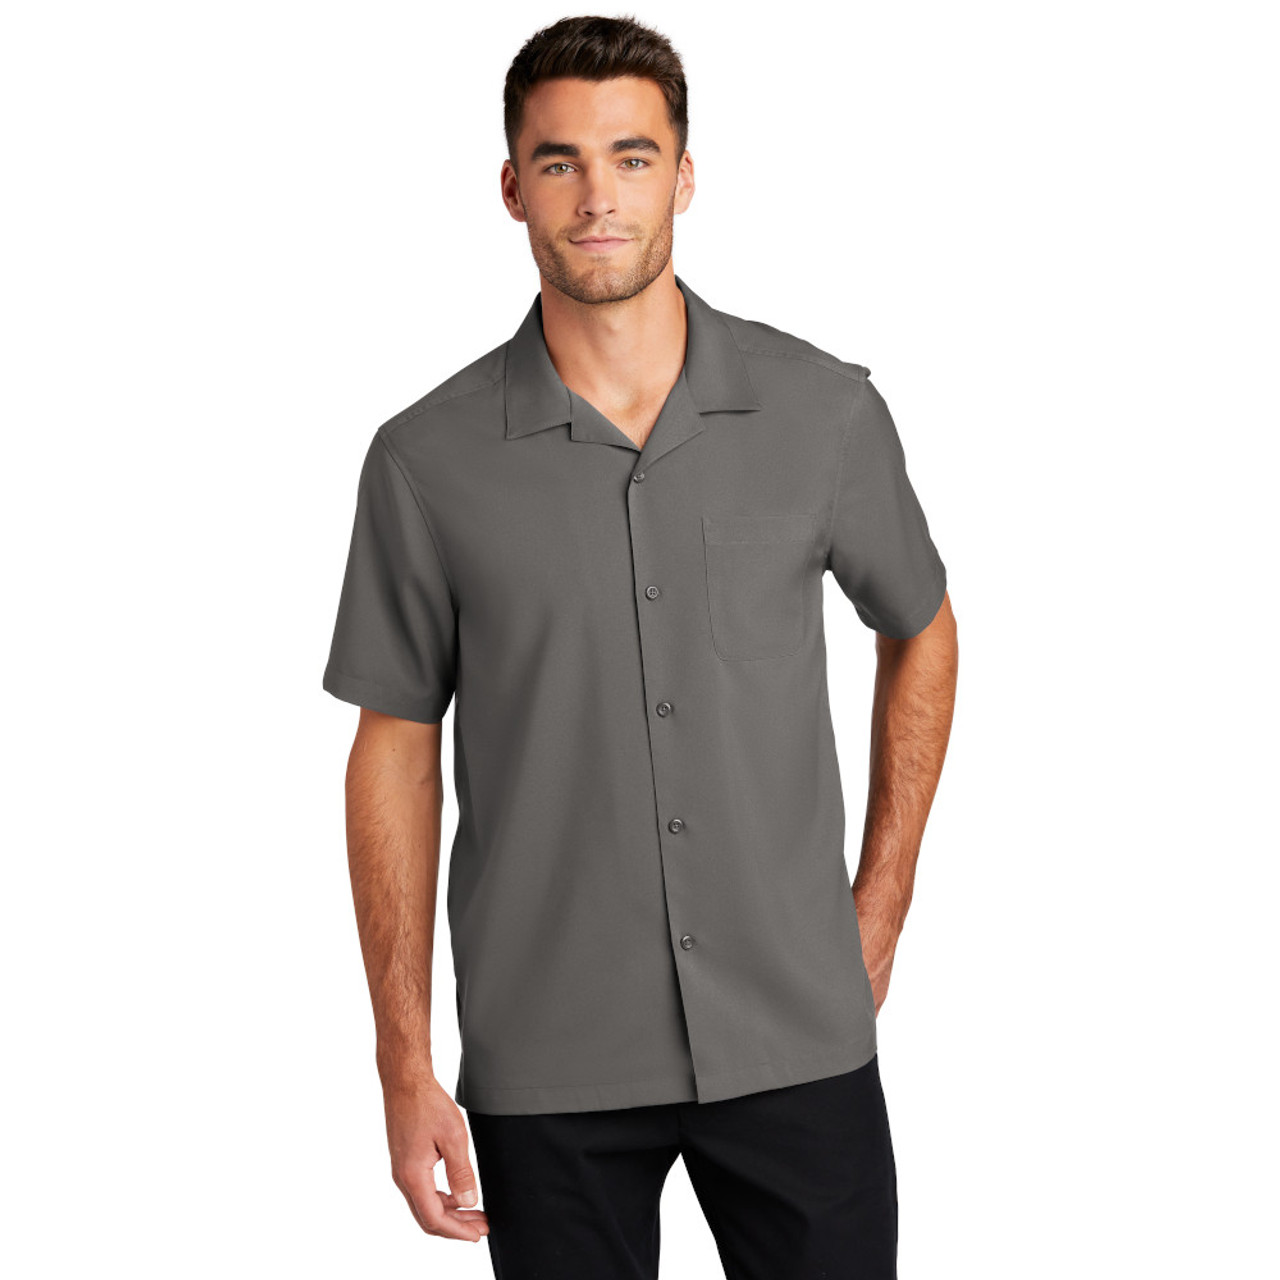 Men's Short Sleeve Performance Staff Shirt